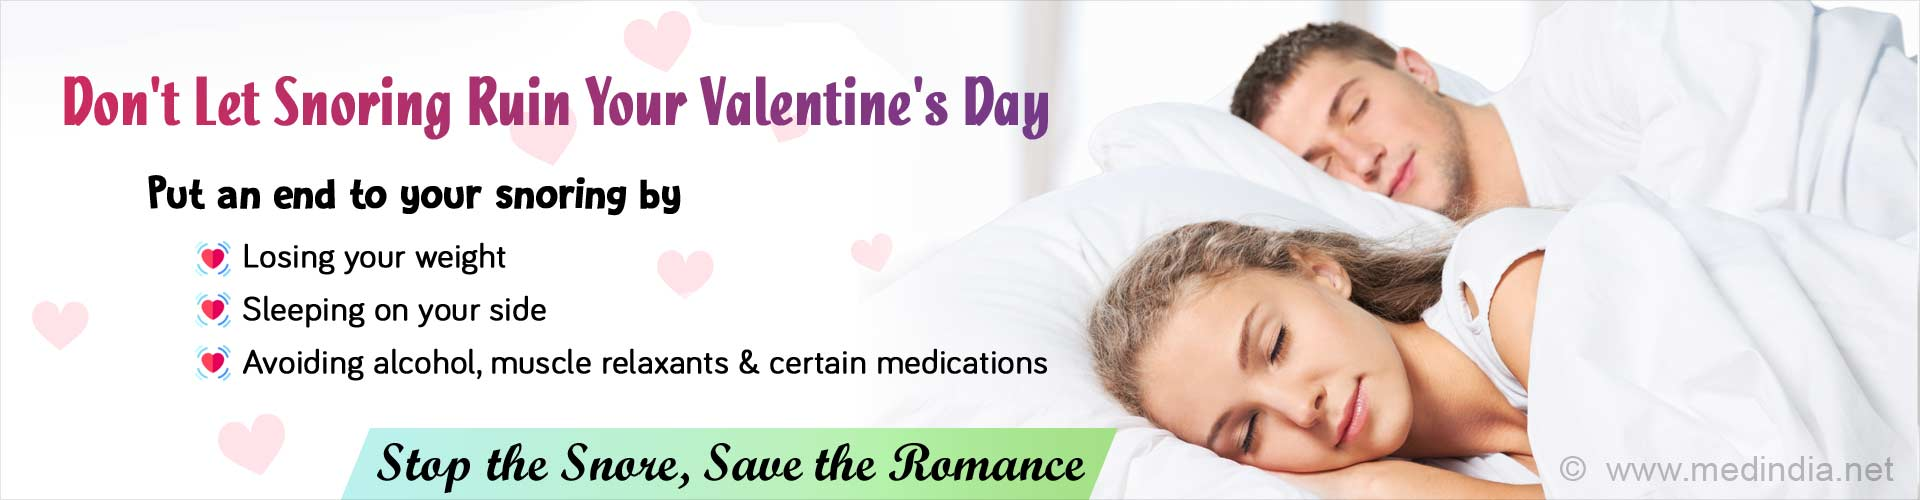 Valentine''s Day Gift: Mute Snoring to Surprise Your Partner